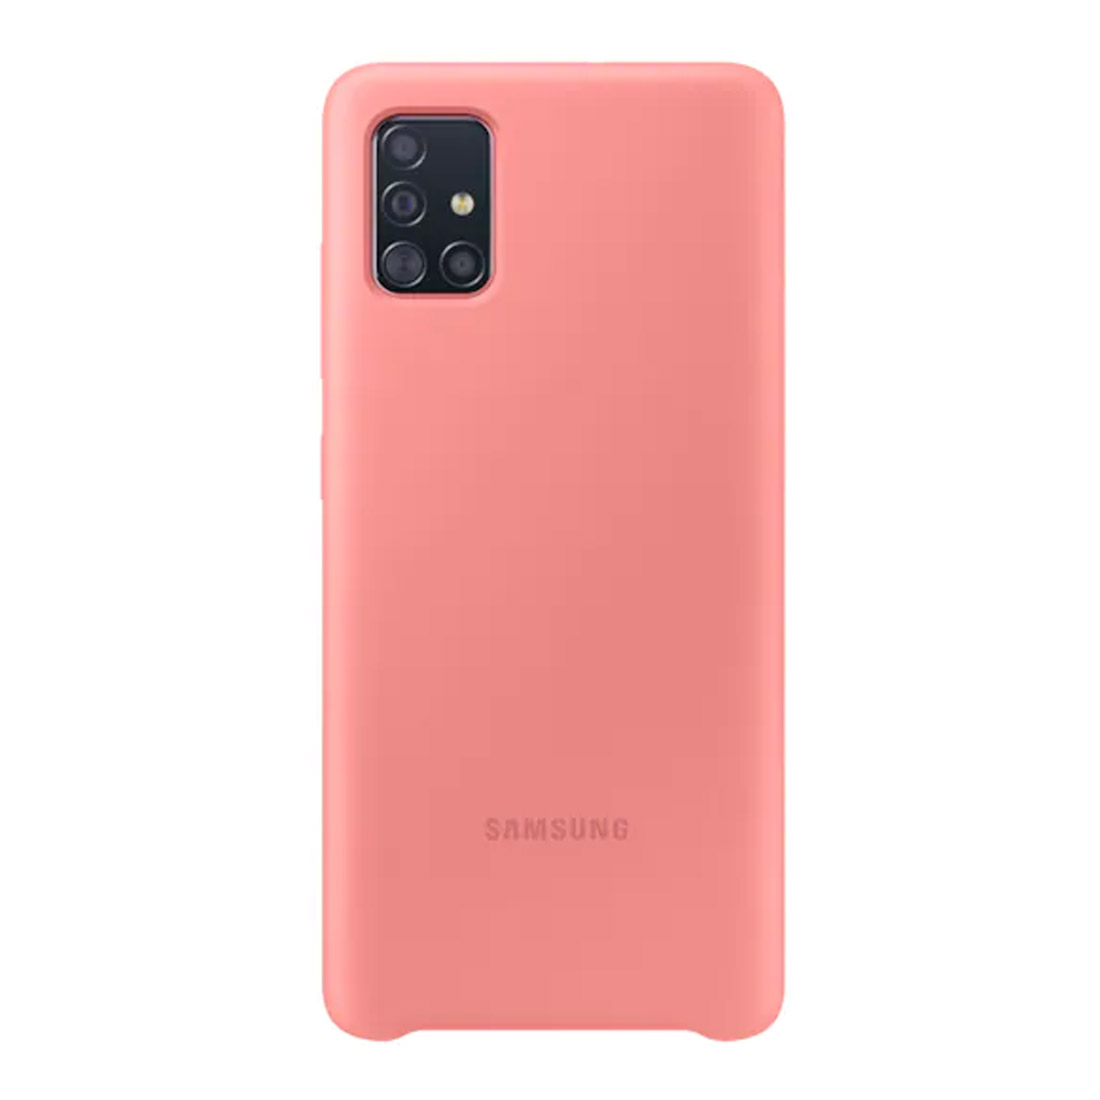 Samsung Galaxy A51 Silicone Cover - Pink